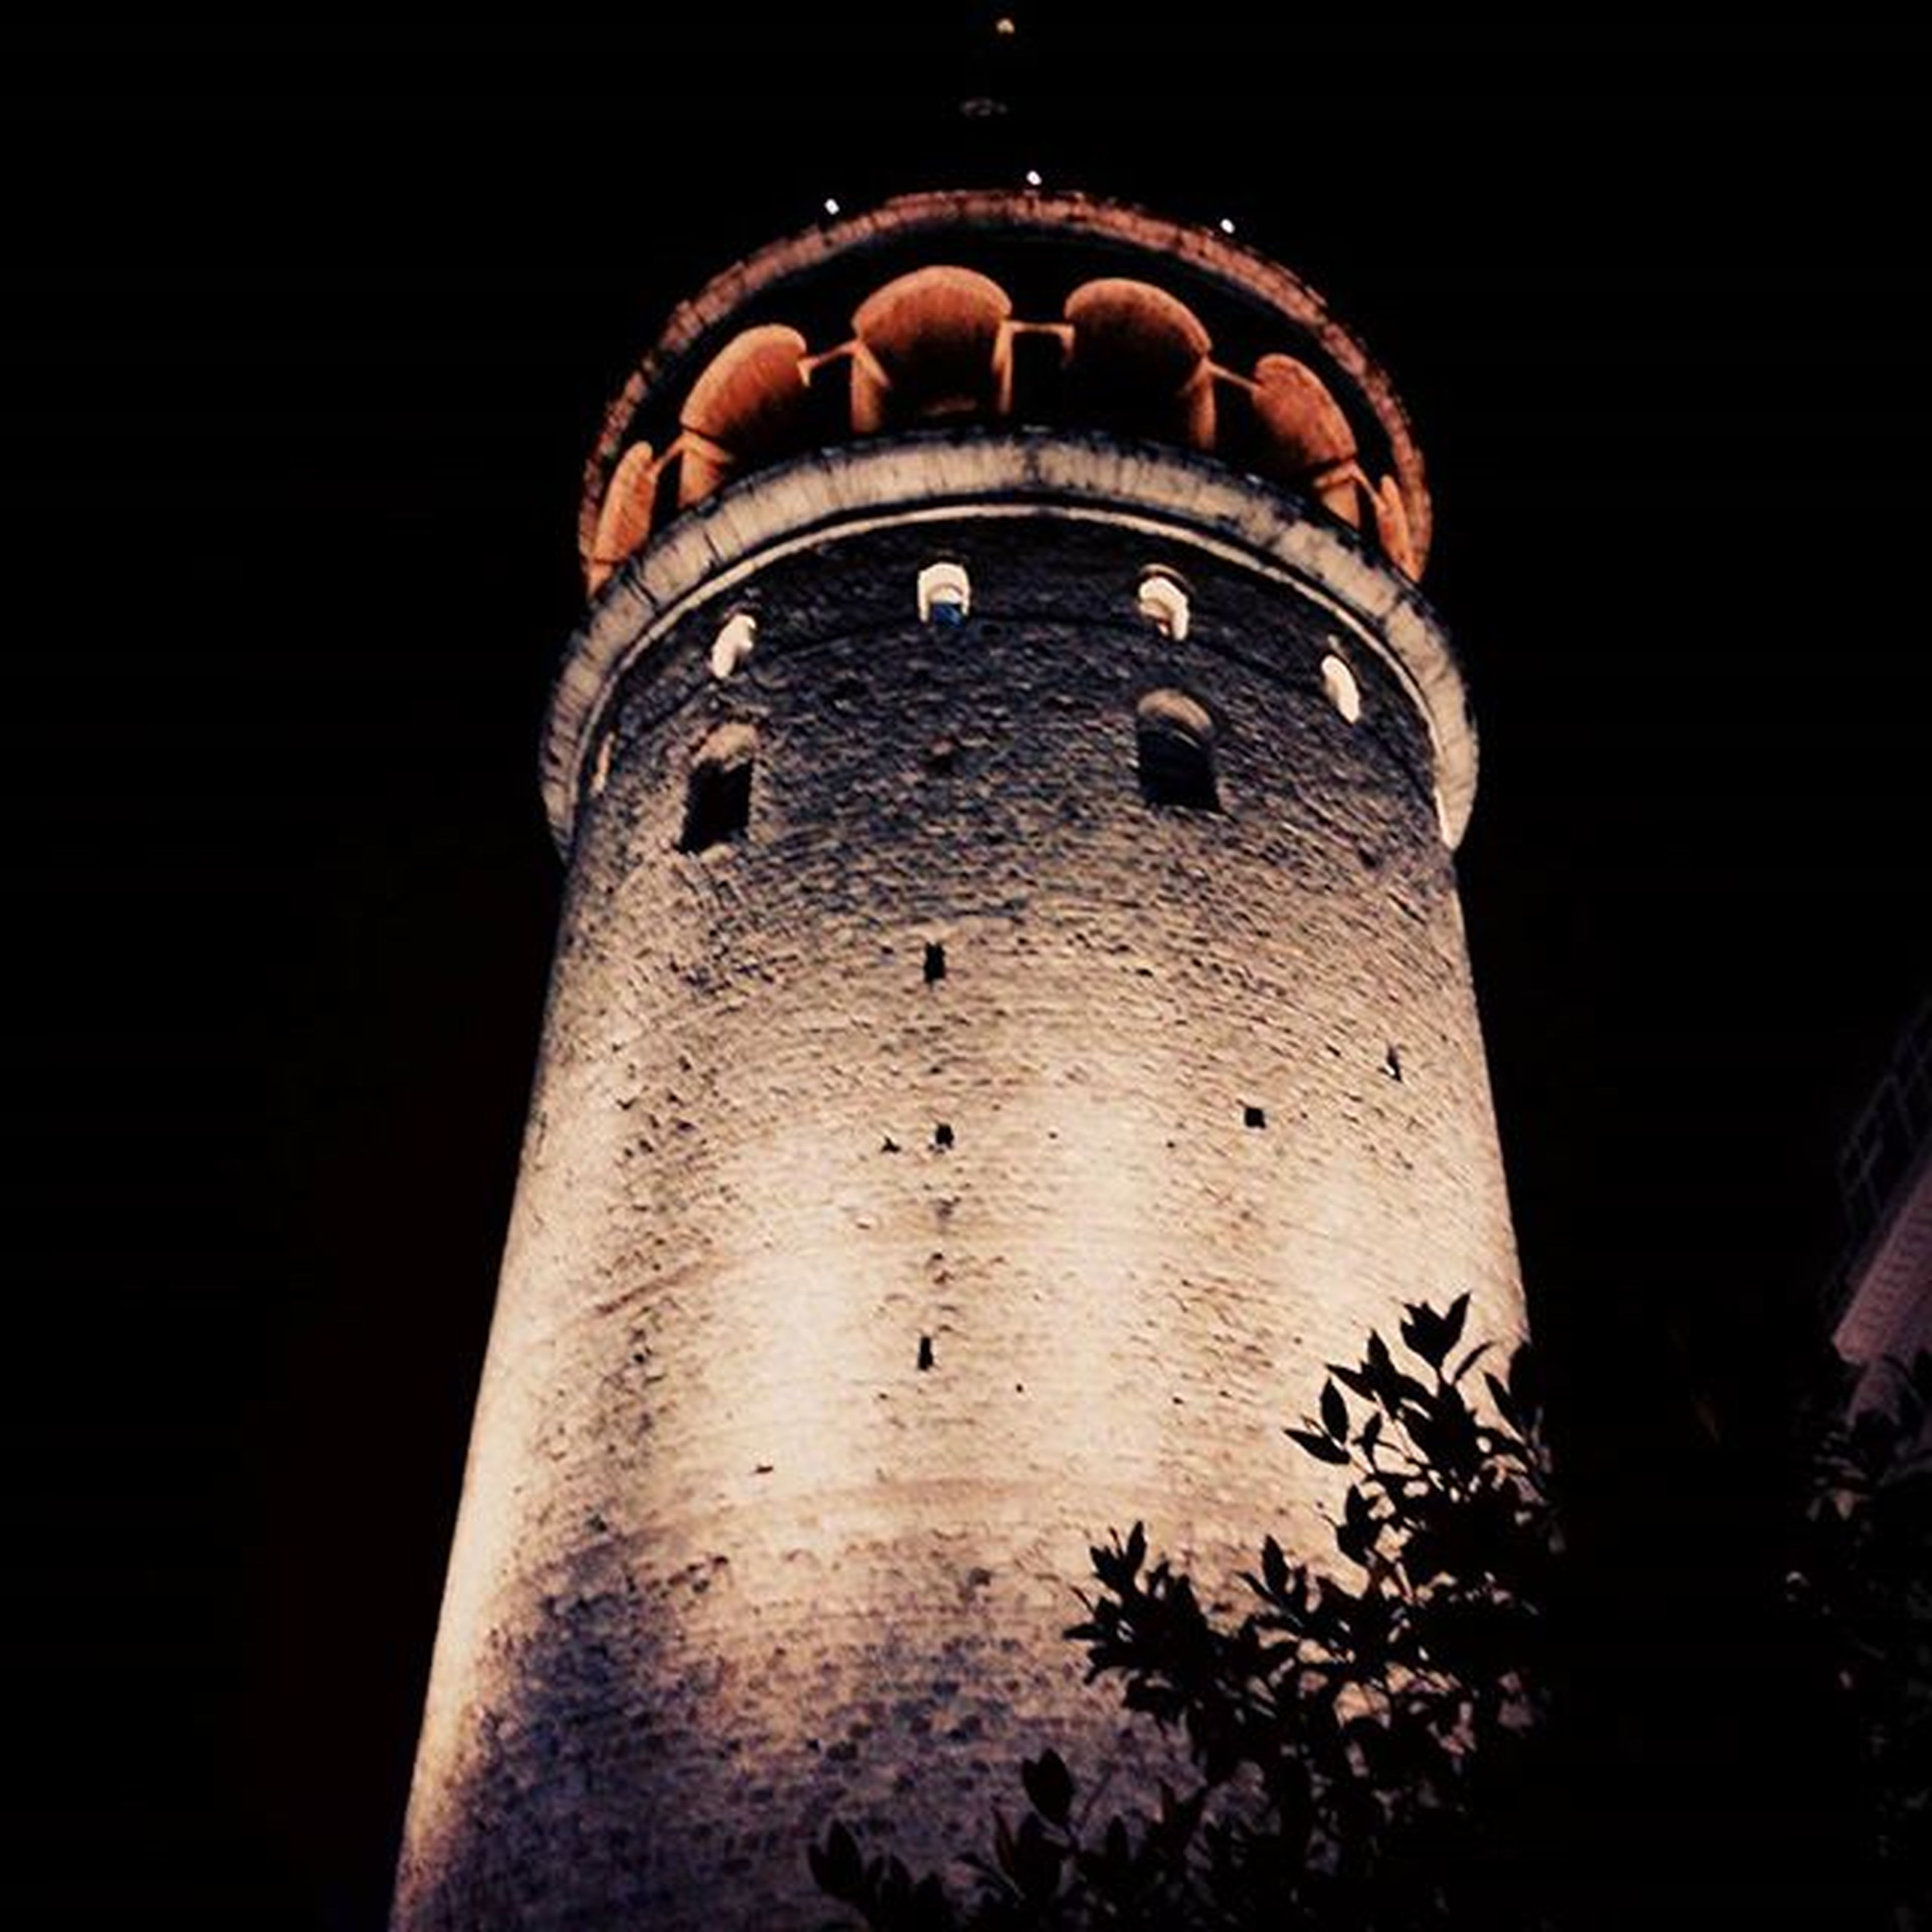 architecture, low angle view, built structure, building exterior, night, arch, old, history, sky, no people, outdoors, clear sky, dark, tower, illuminated, copy space, tree, building, window